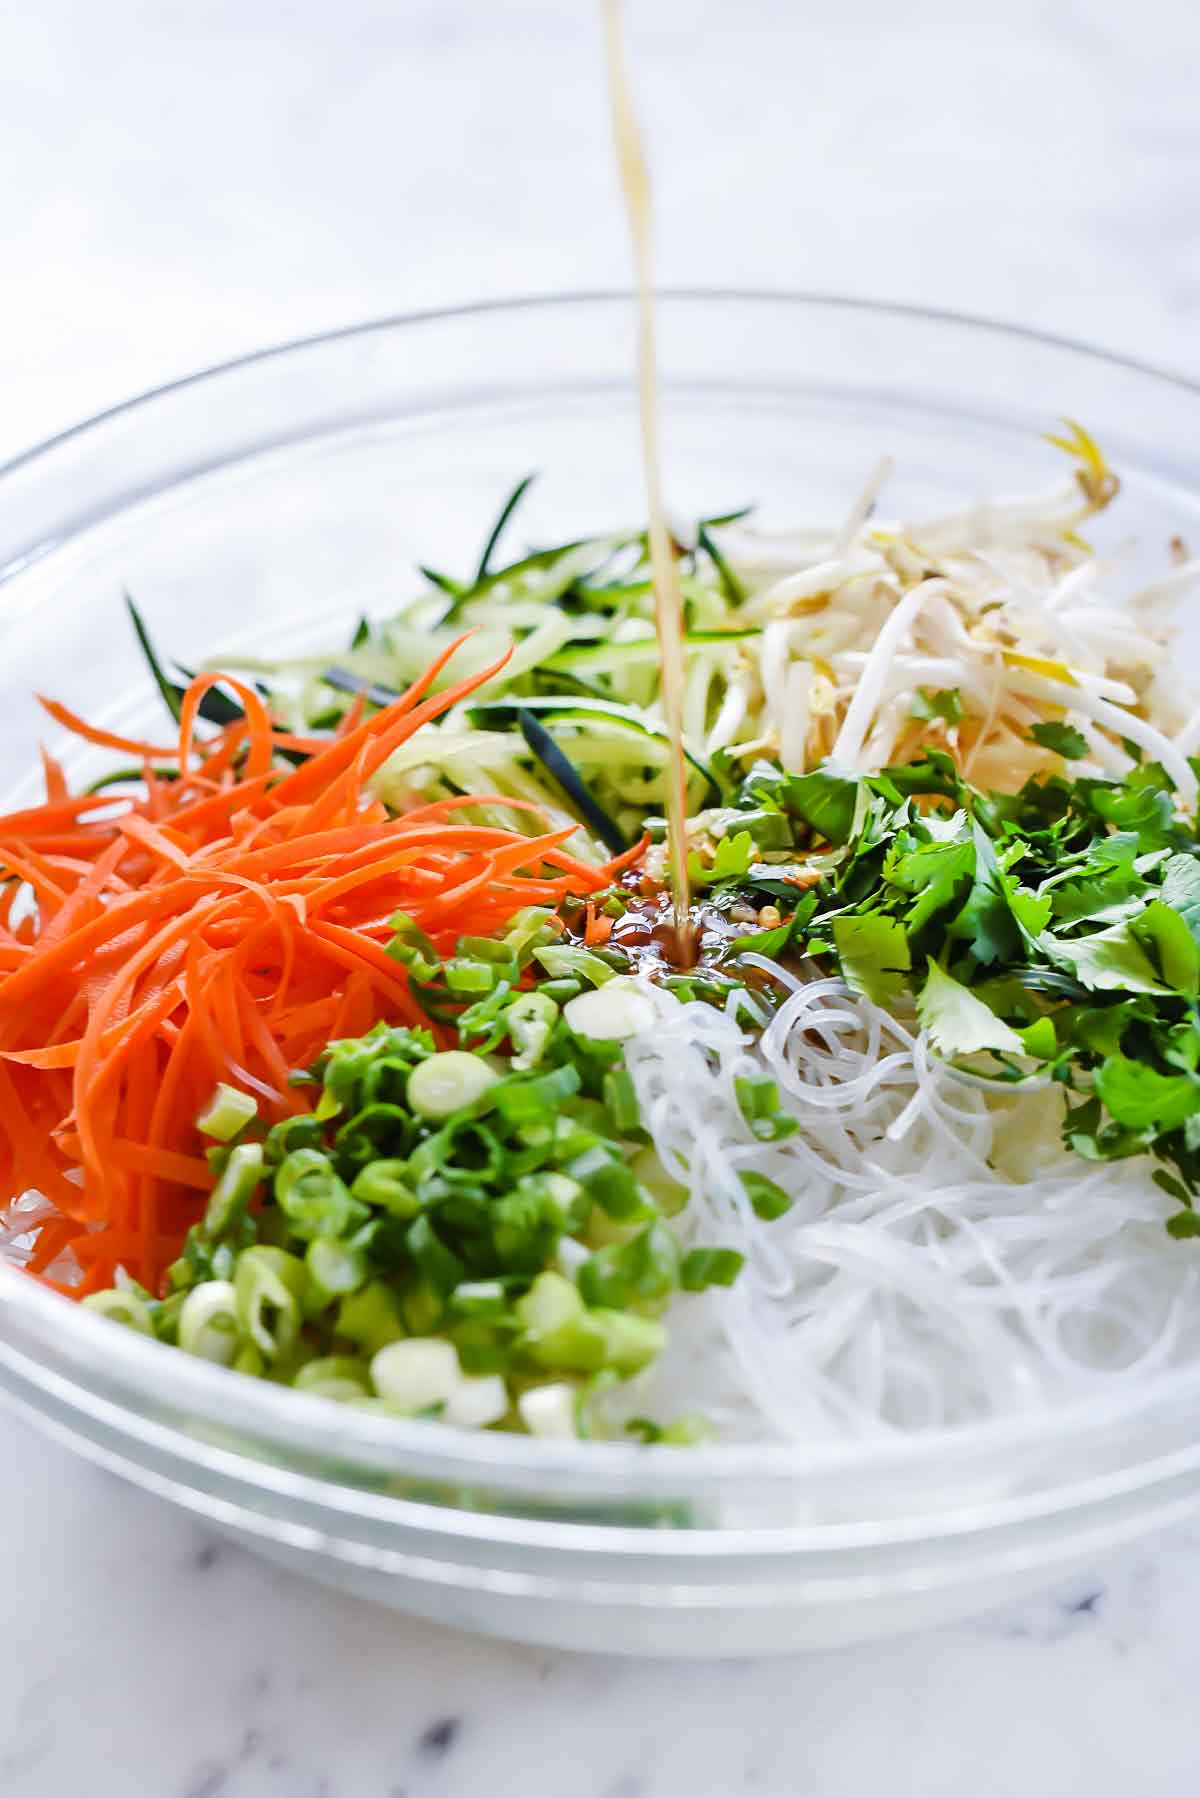 Easy vermicelli noodle recipes